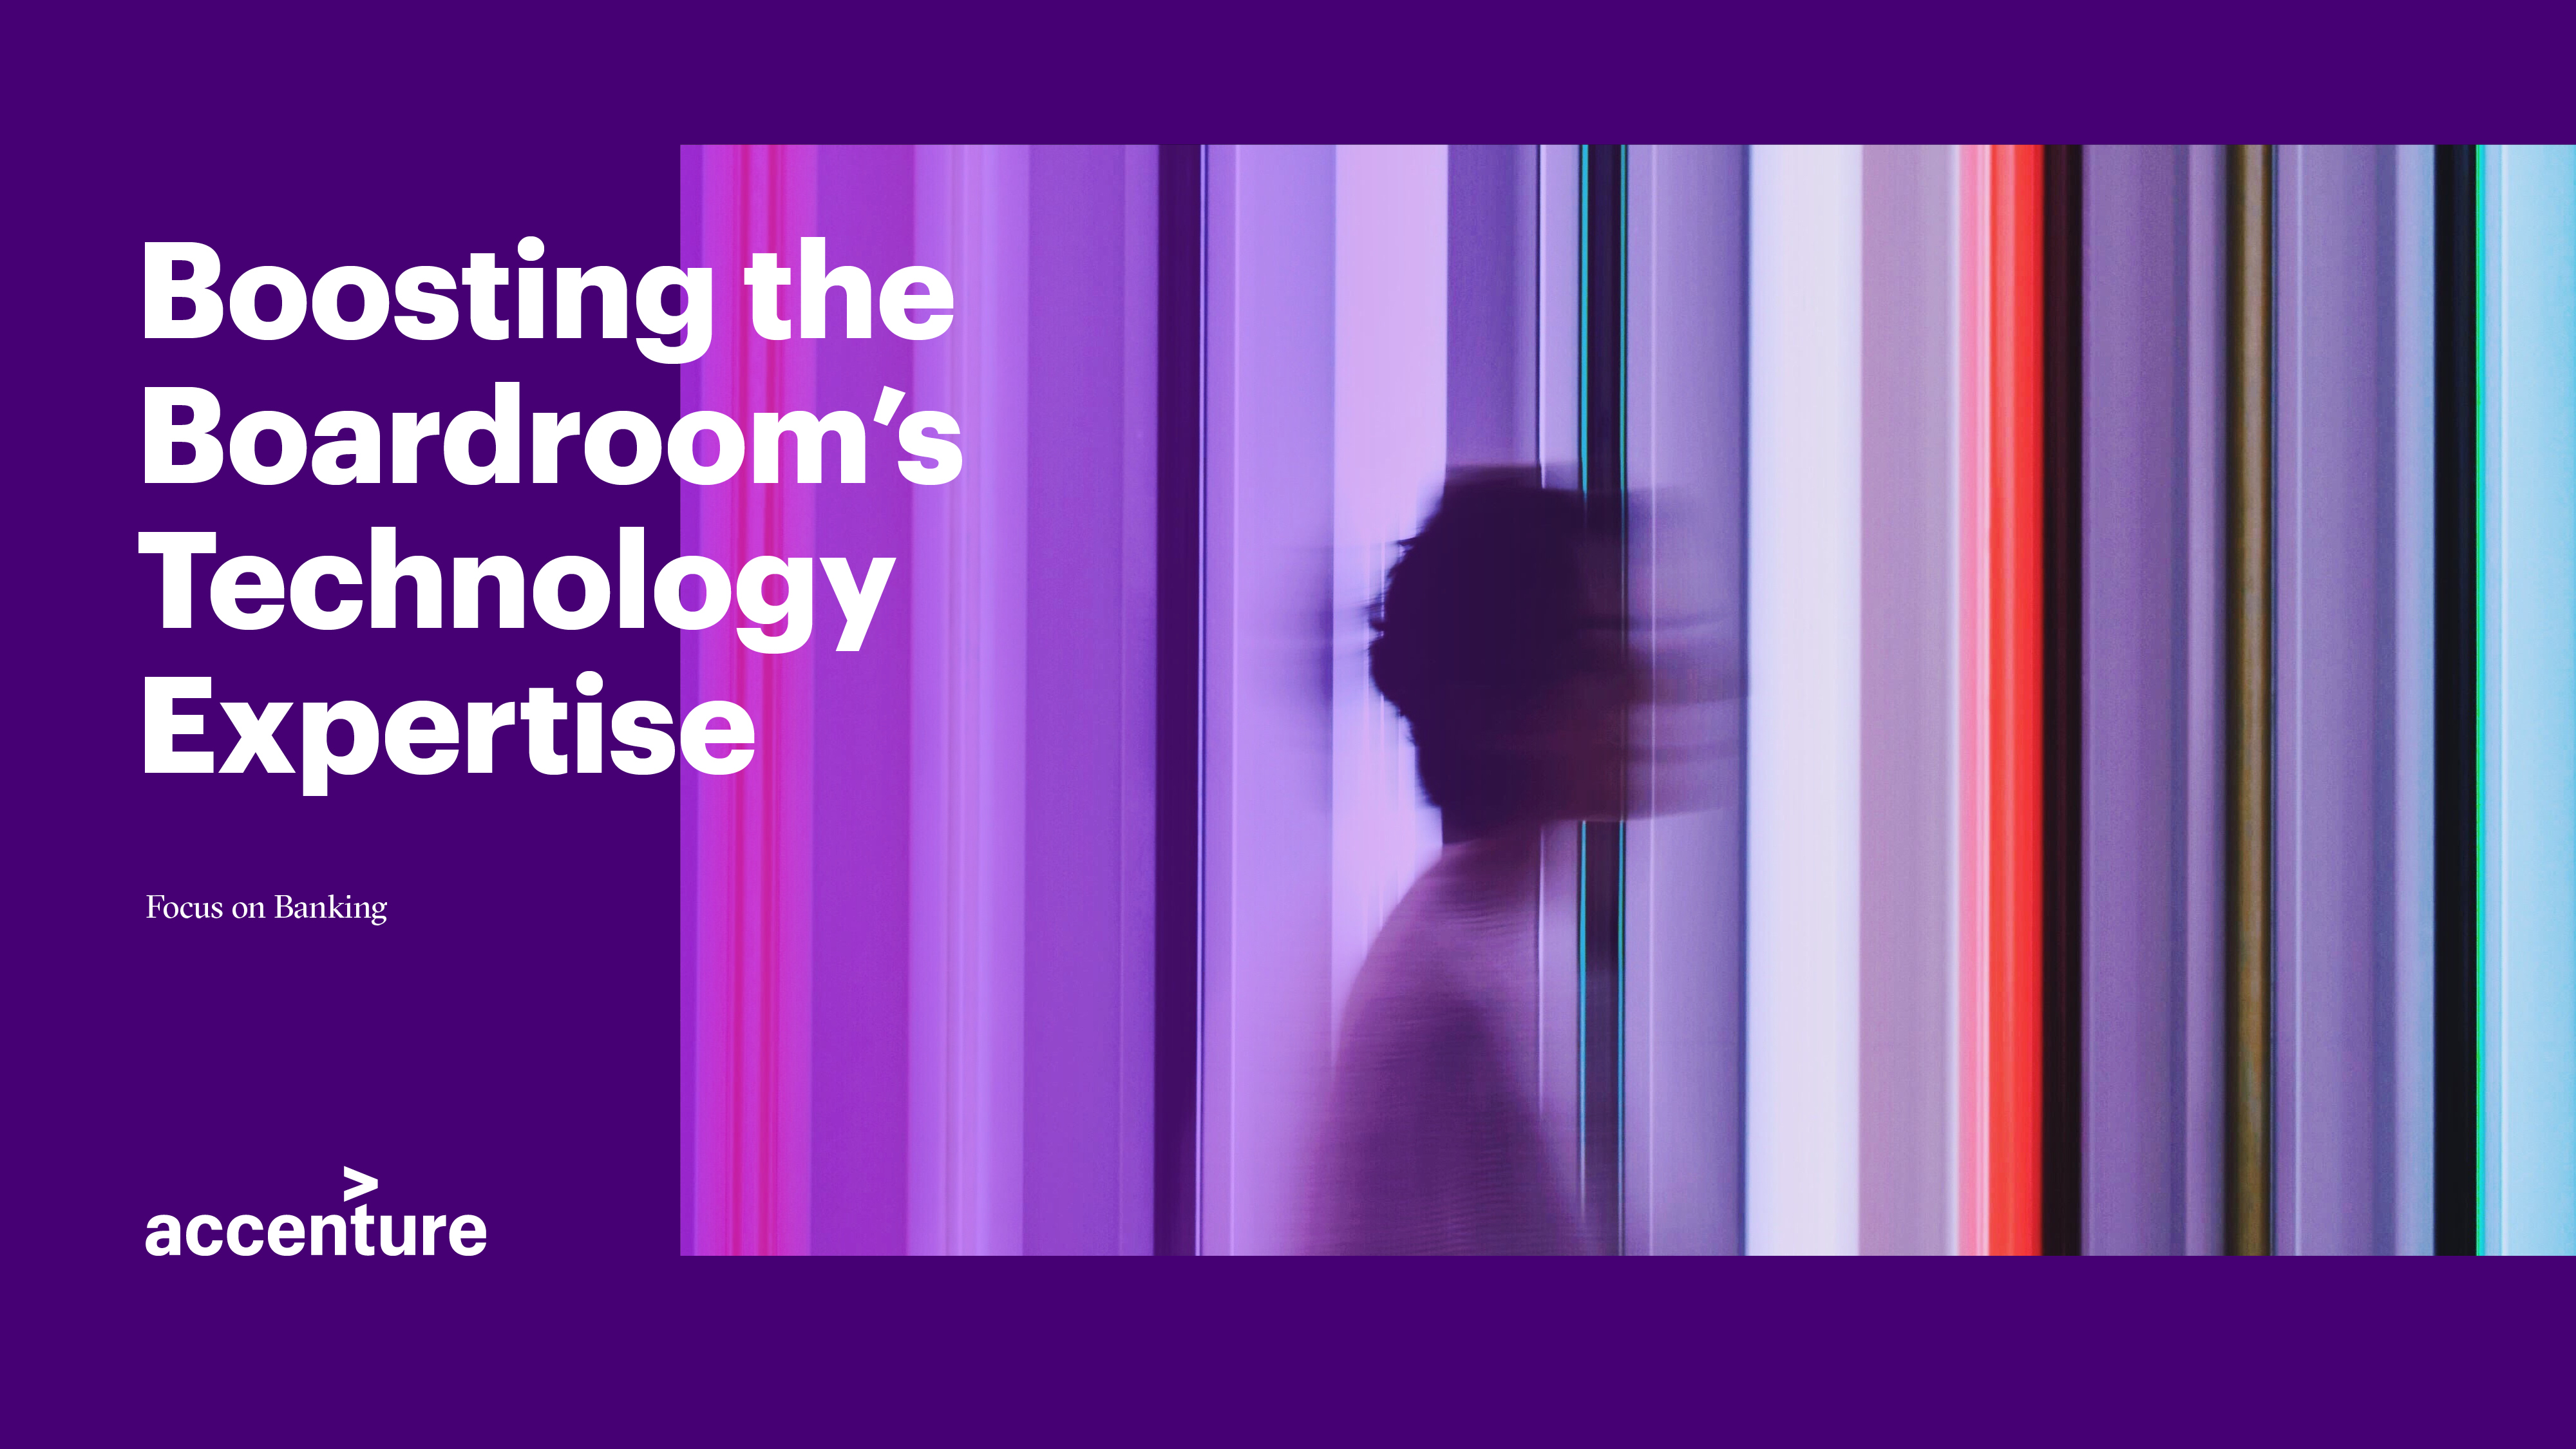 Boosting the Boardroom's Technology Expertise